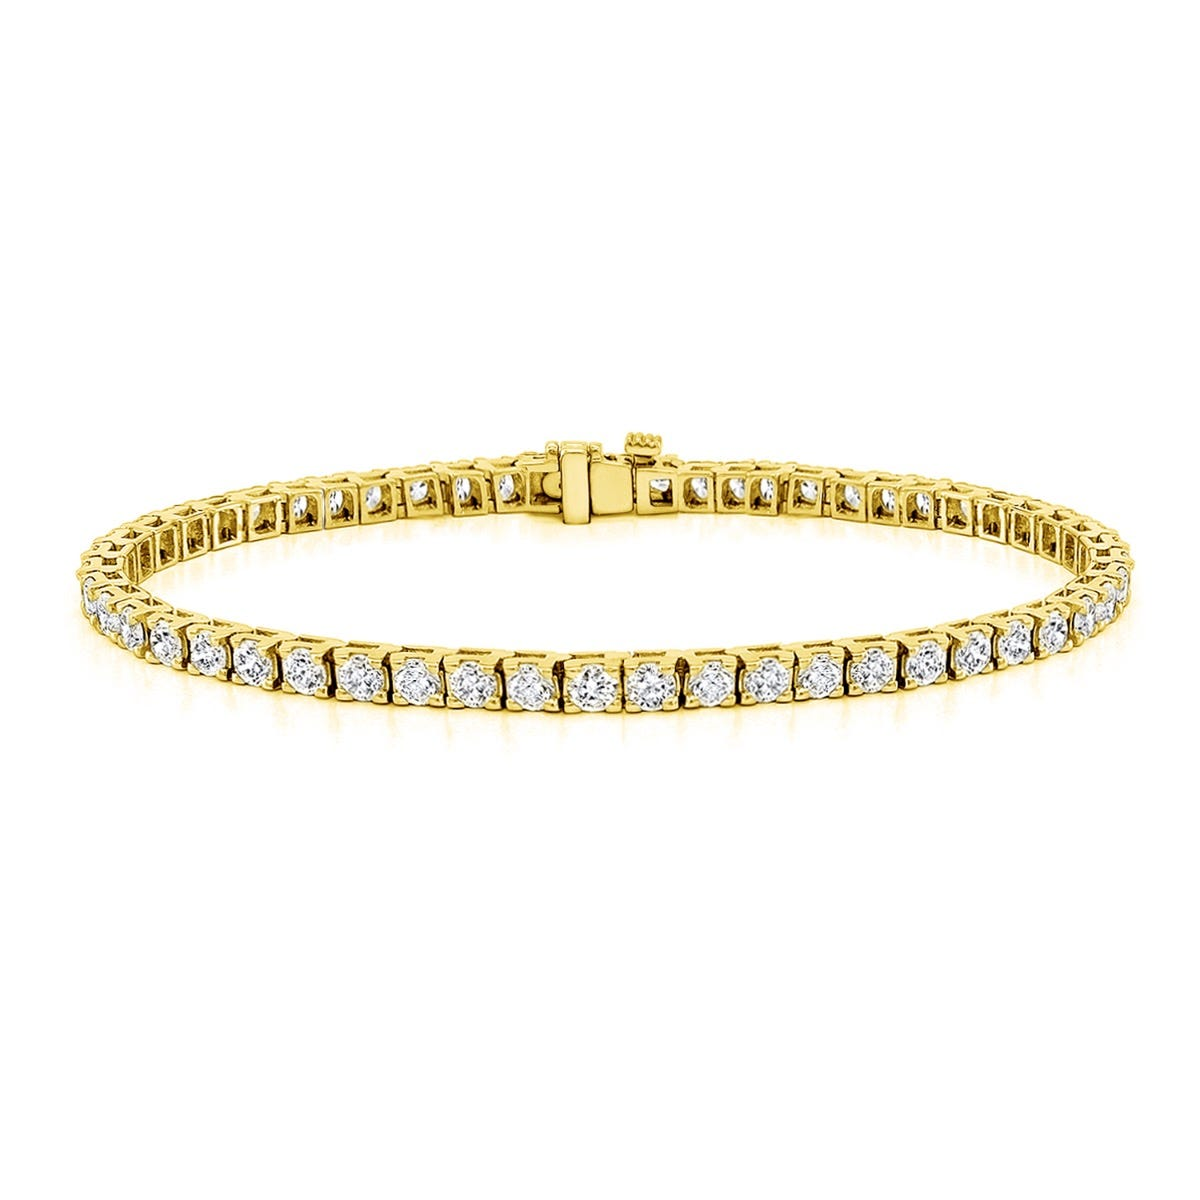 4ctw. 4-Prong Square Link Diamond Tennis Bracelet in 14K Yellow Gold (HI, VS1-VS2)